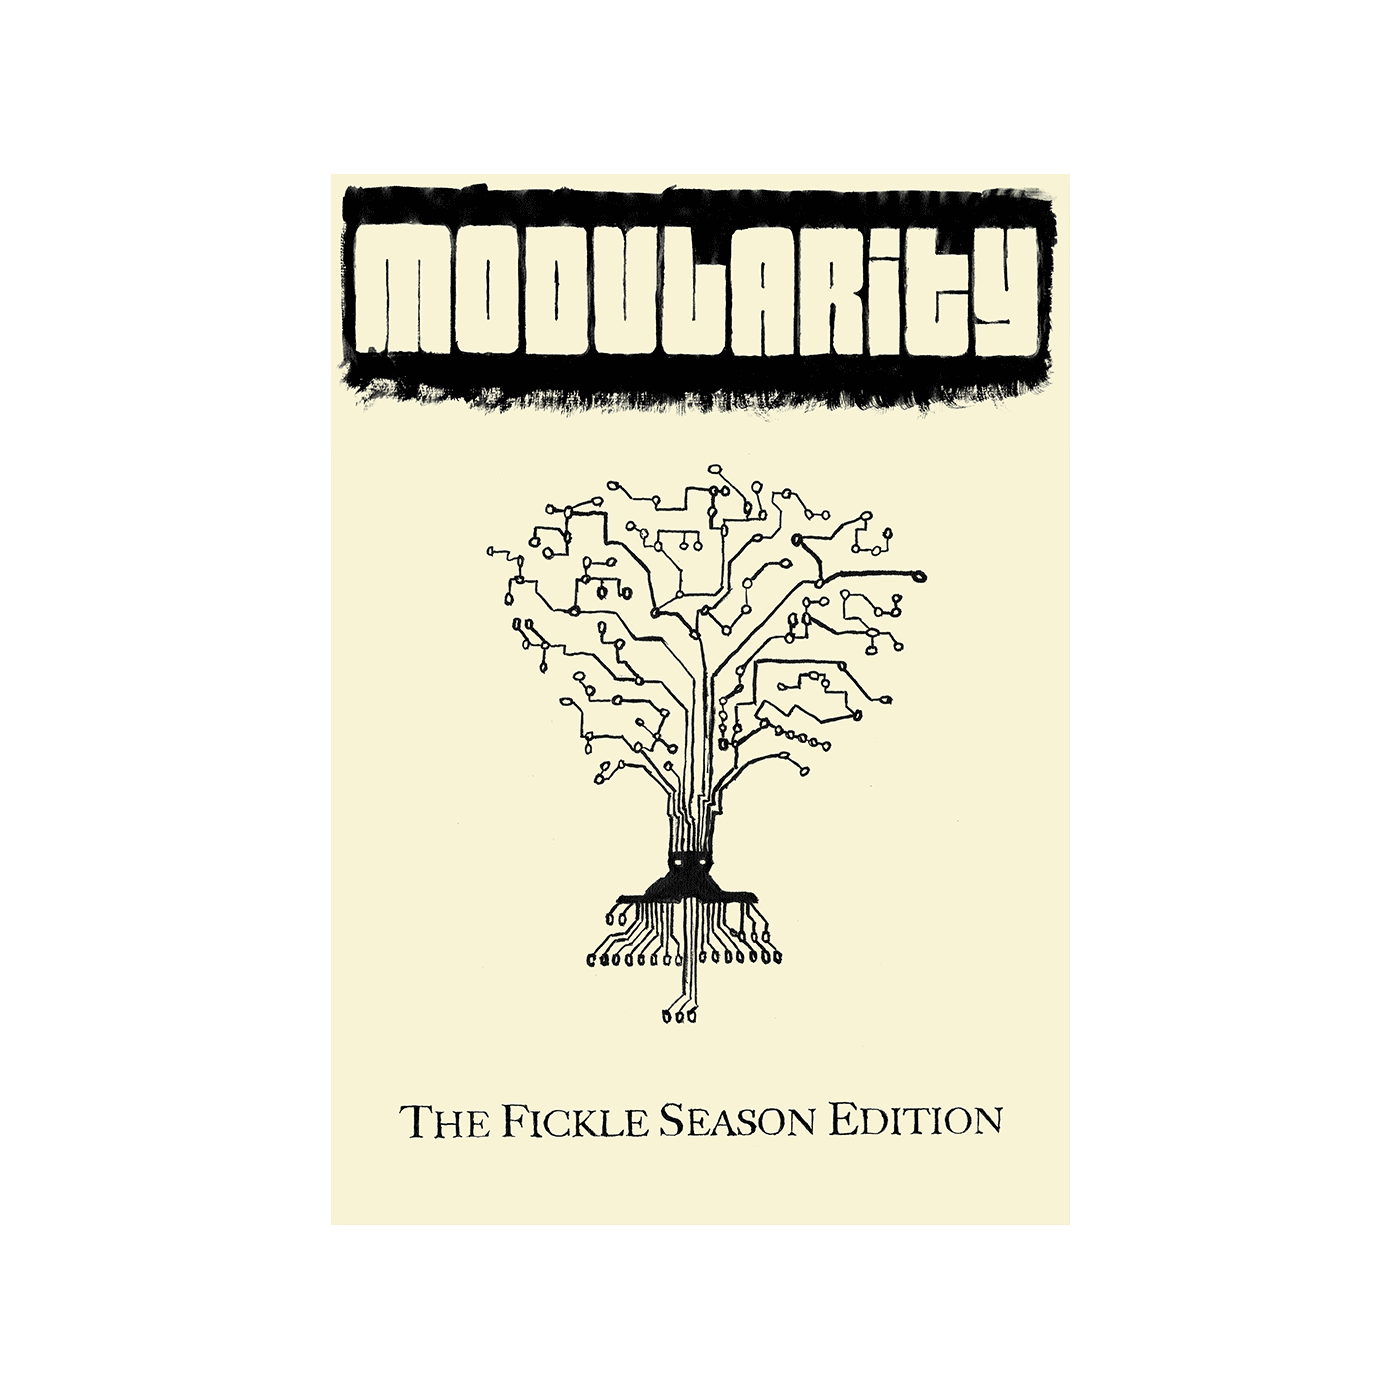 Modularity 2 - The Fickle Season Edition